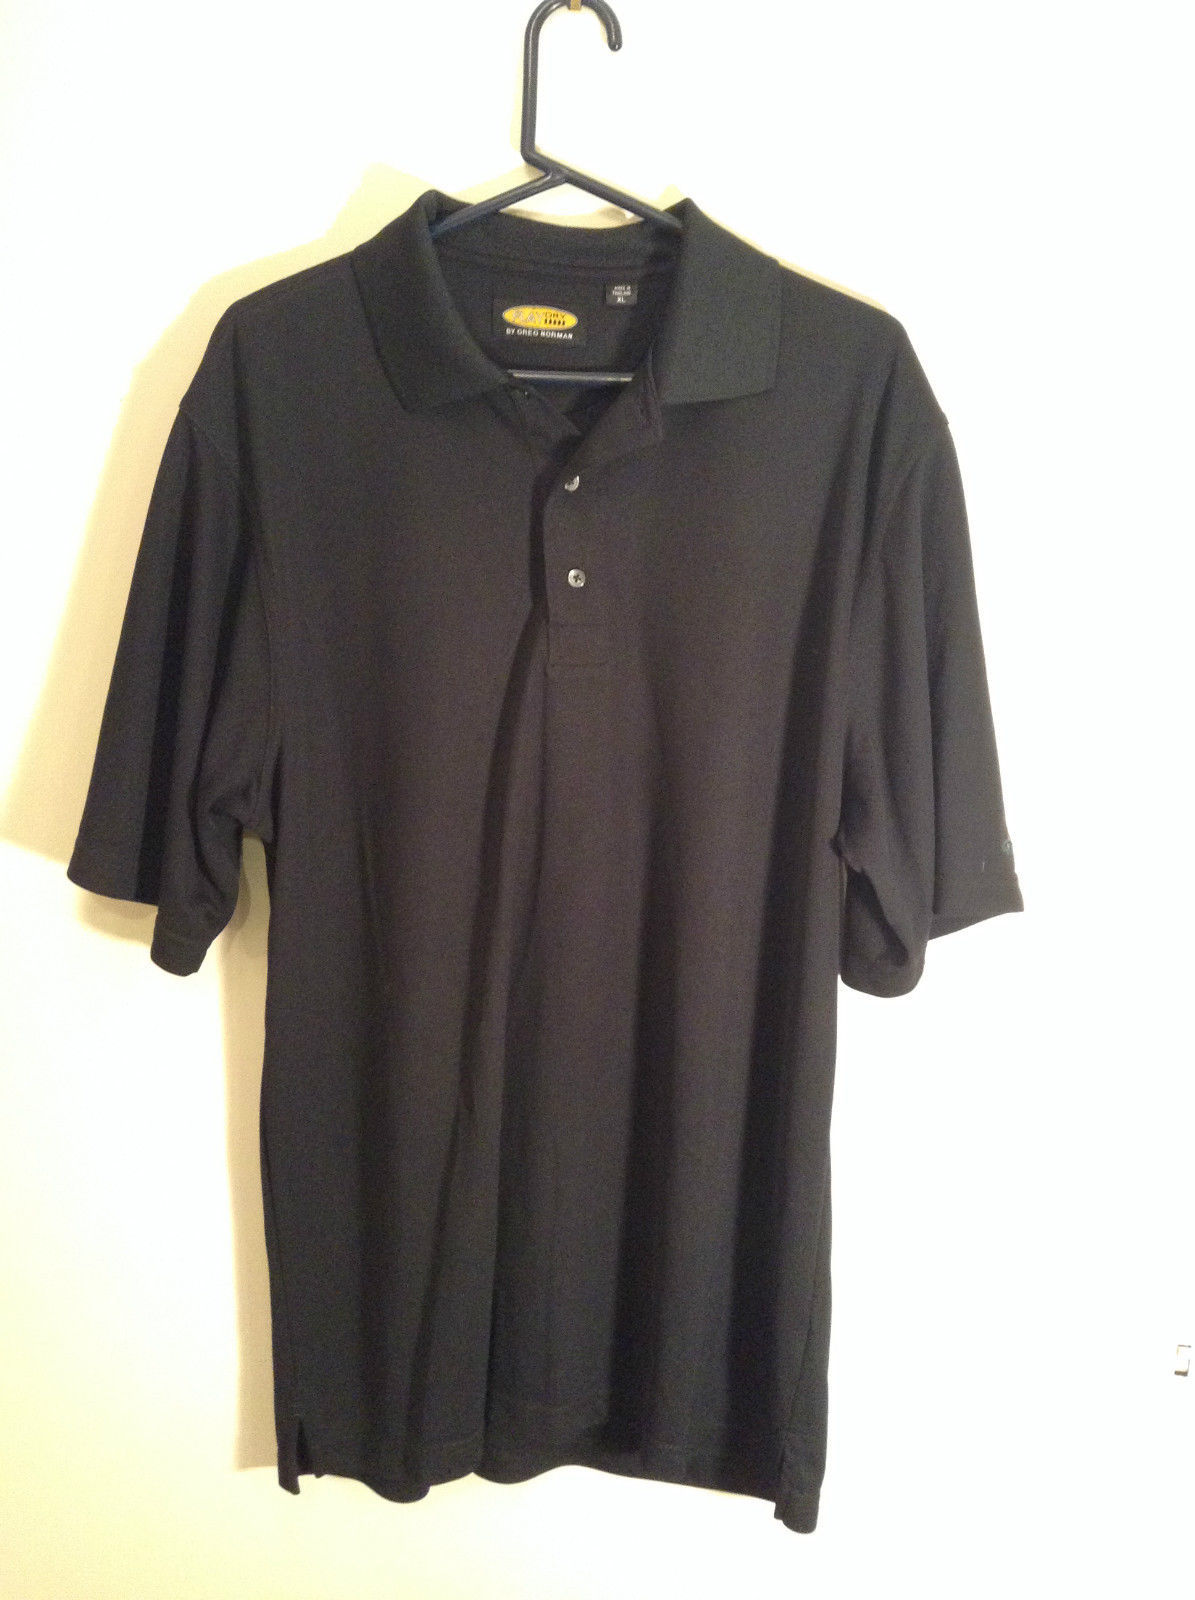 Play Dry by Greg Norman Black Short Sleeve Polo Shirt Size XL Detail Left Sleeve